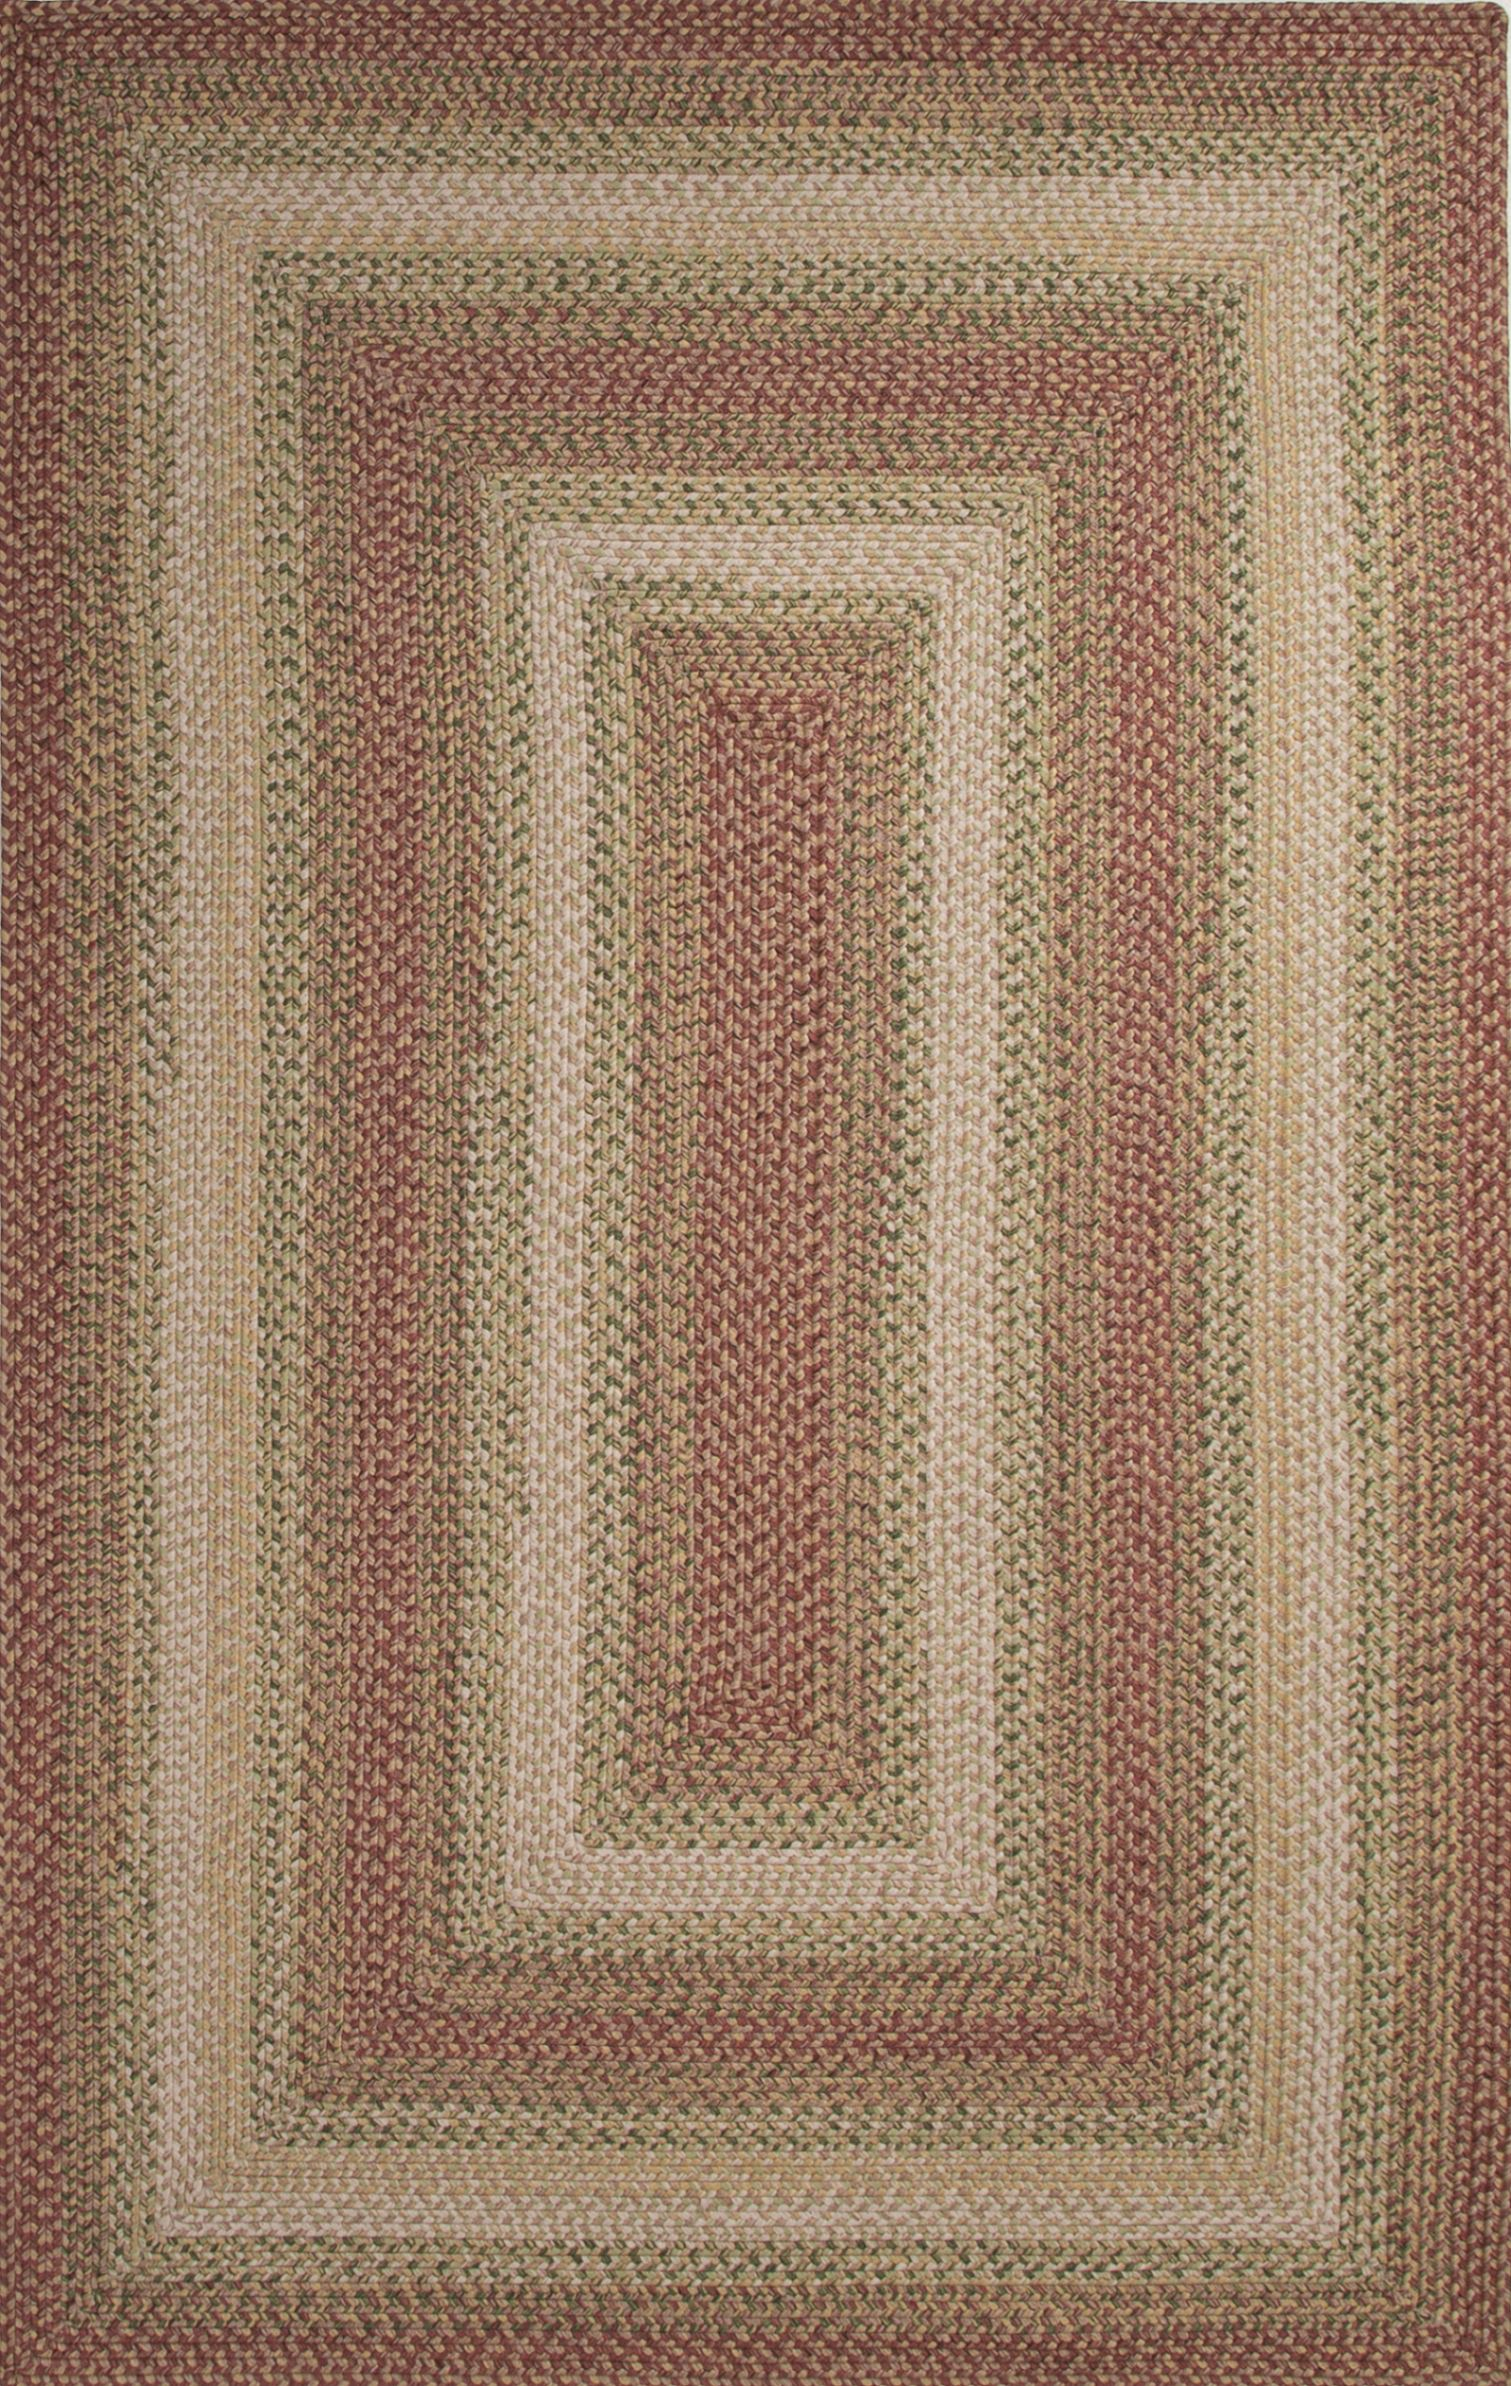 Jaipur Living Ultra Durable Braided Rugs Red Rectangle 8x10 Ft Viscose Carpet 68228